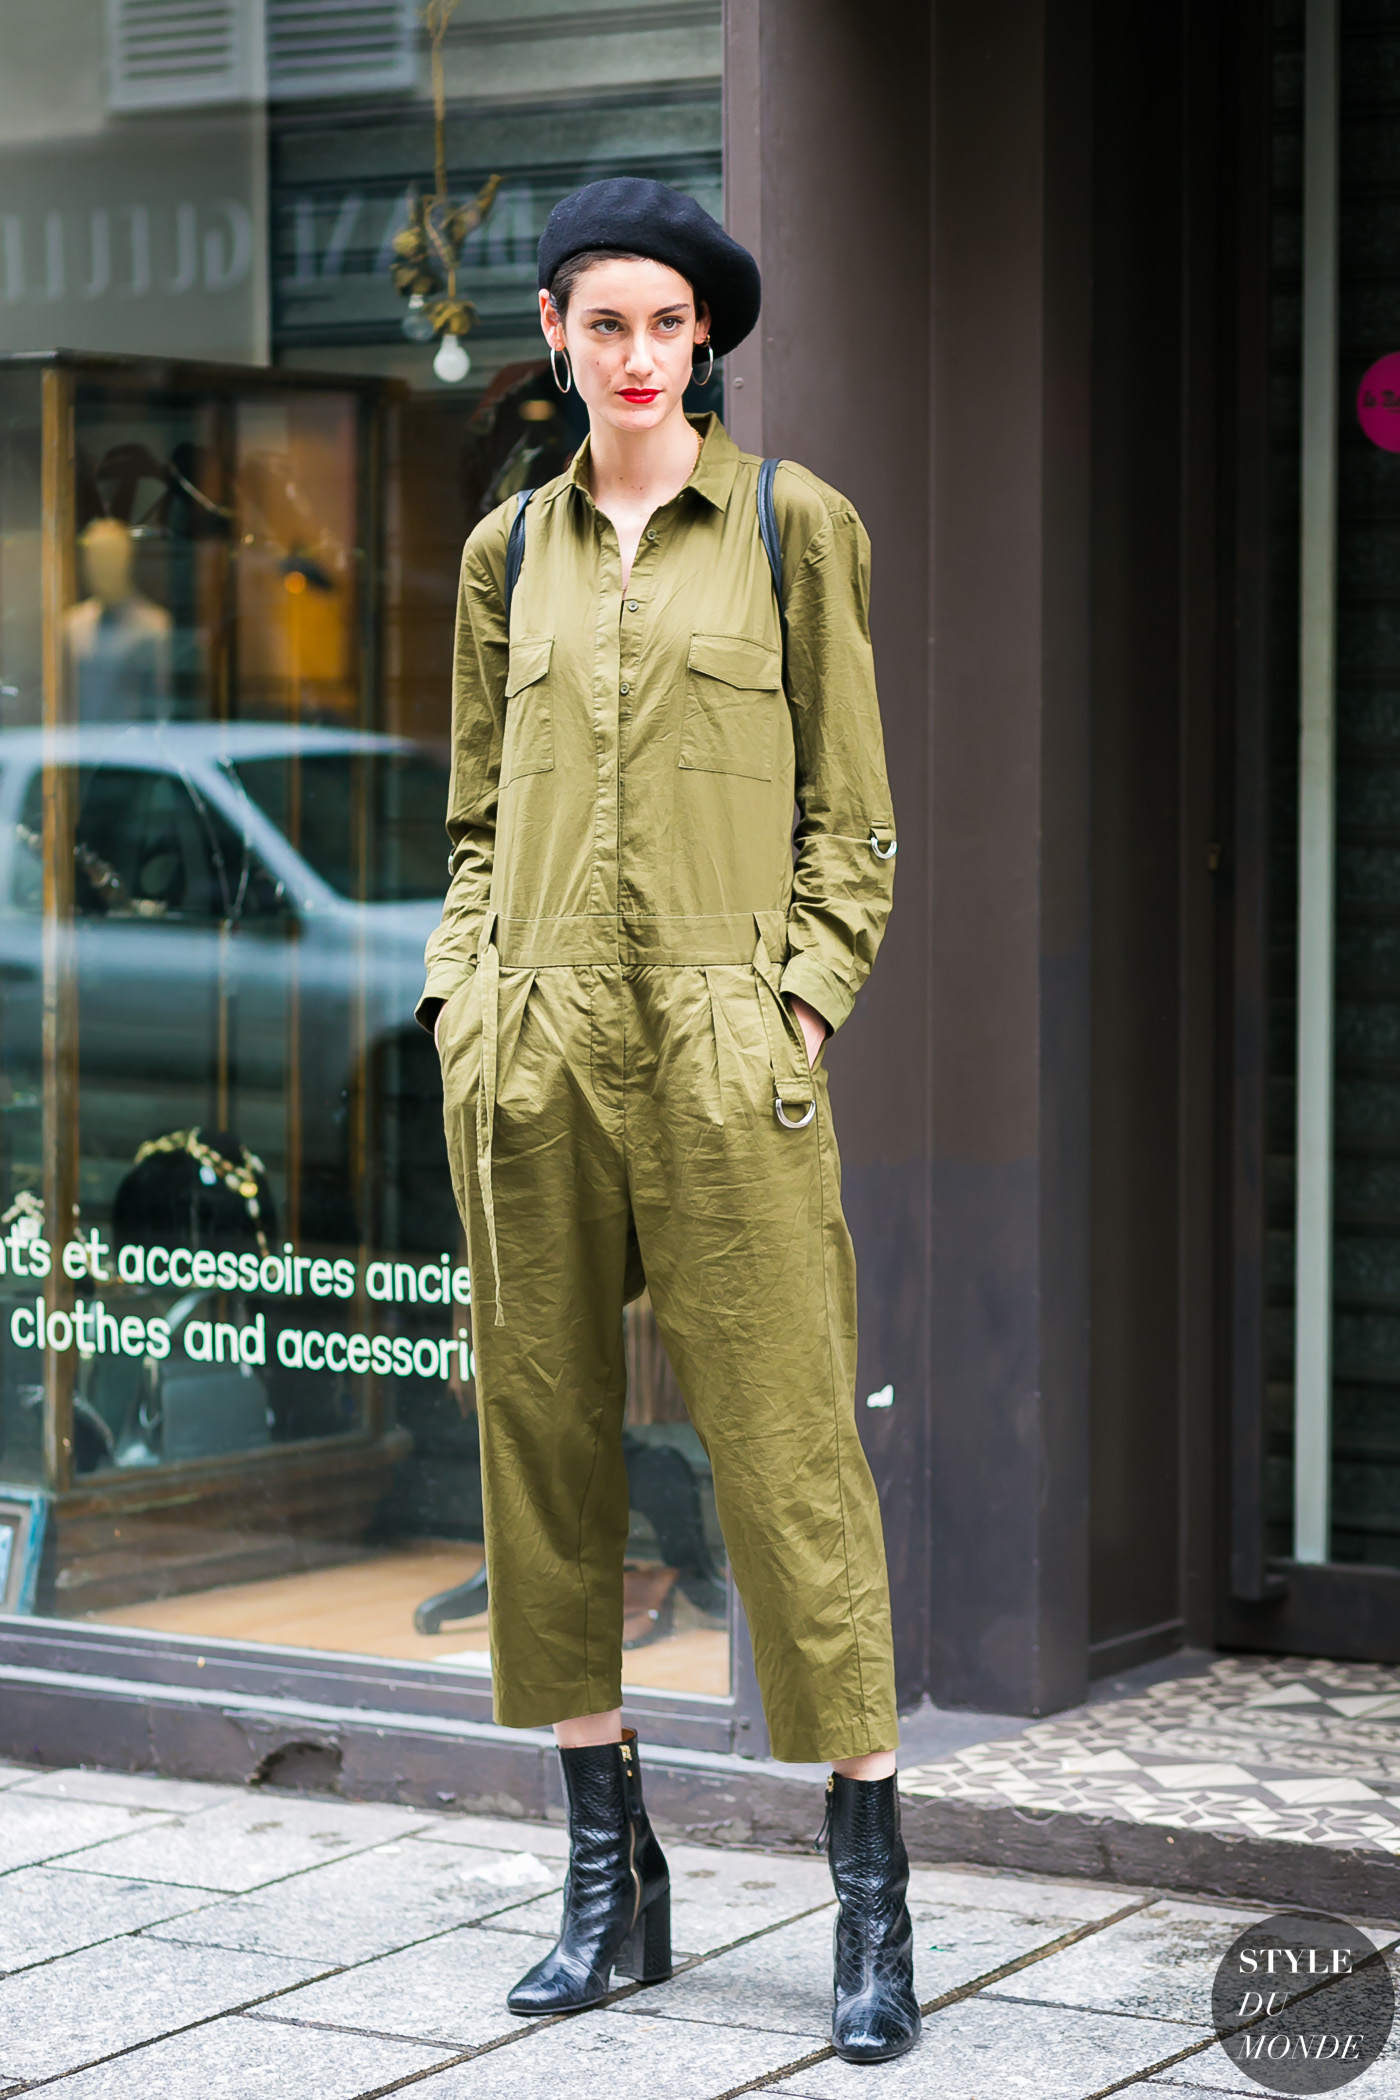 Before A.F.Vandevorst by STYLEDUMONDE Street Style Fashion Photography0E2A3843